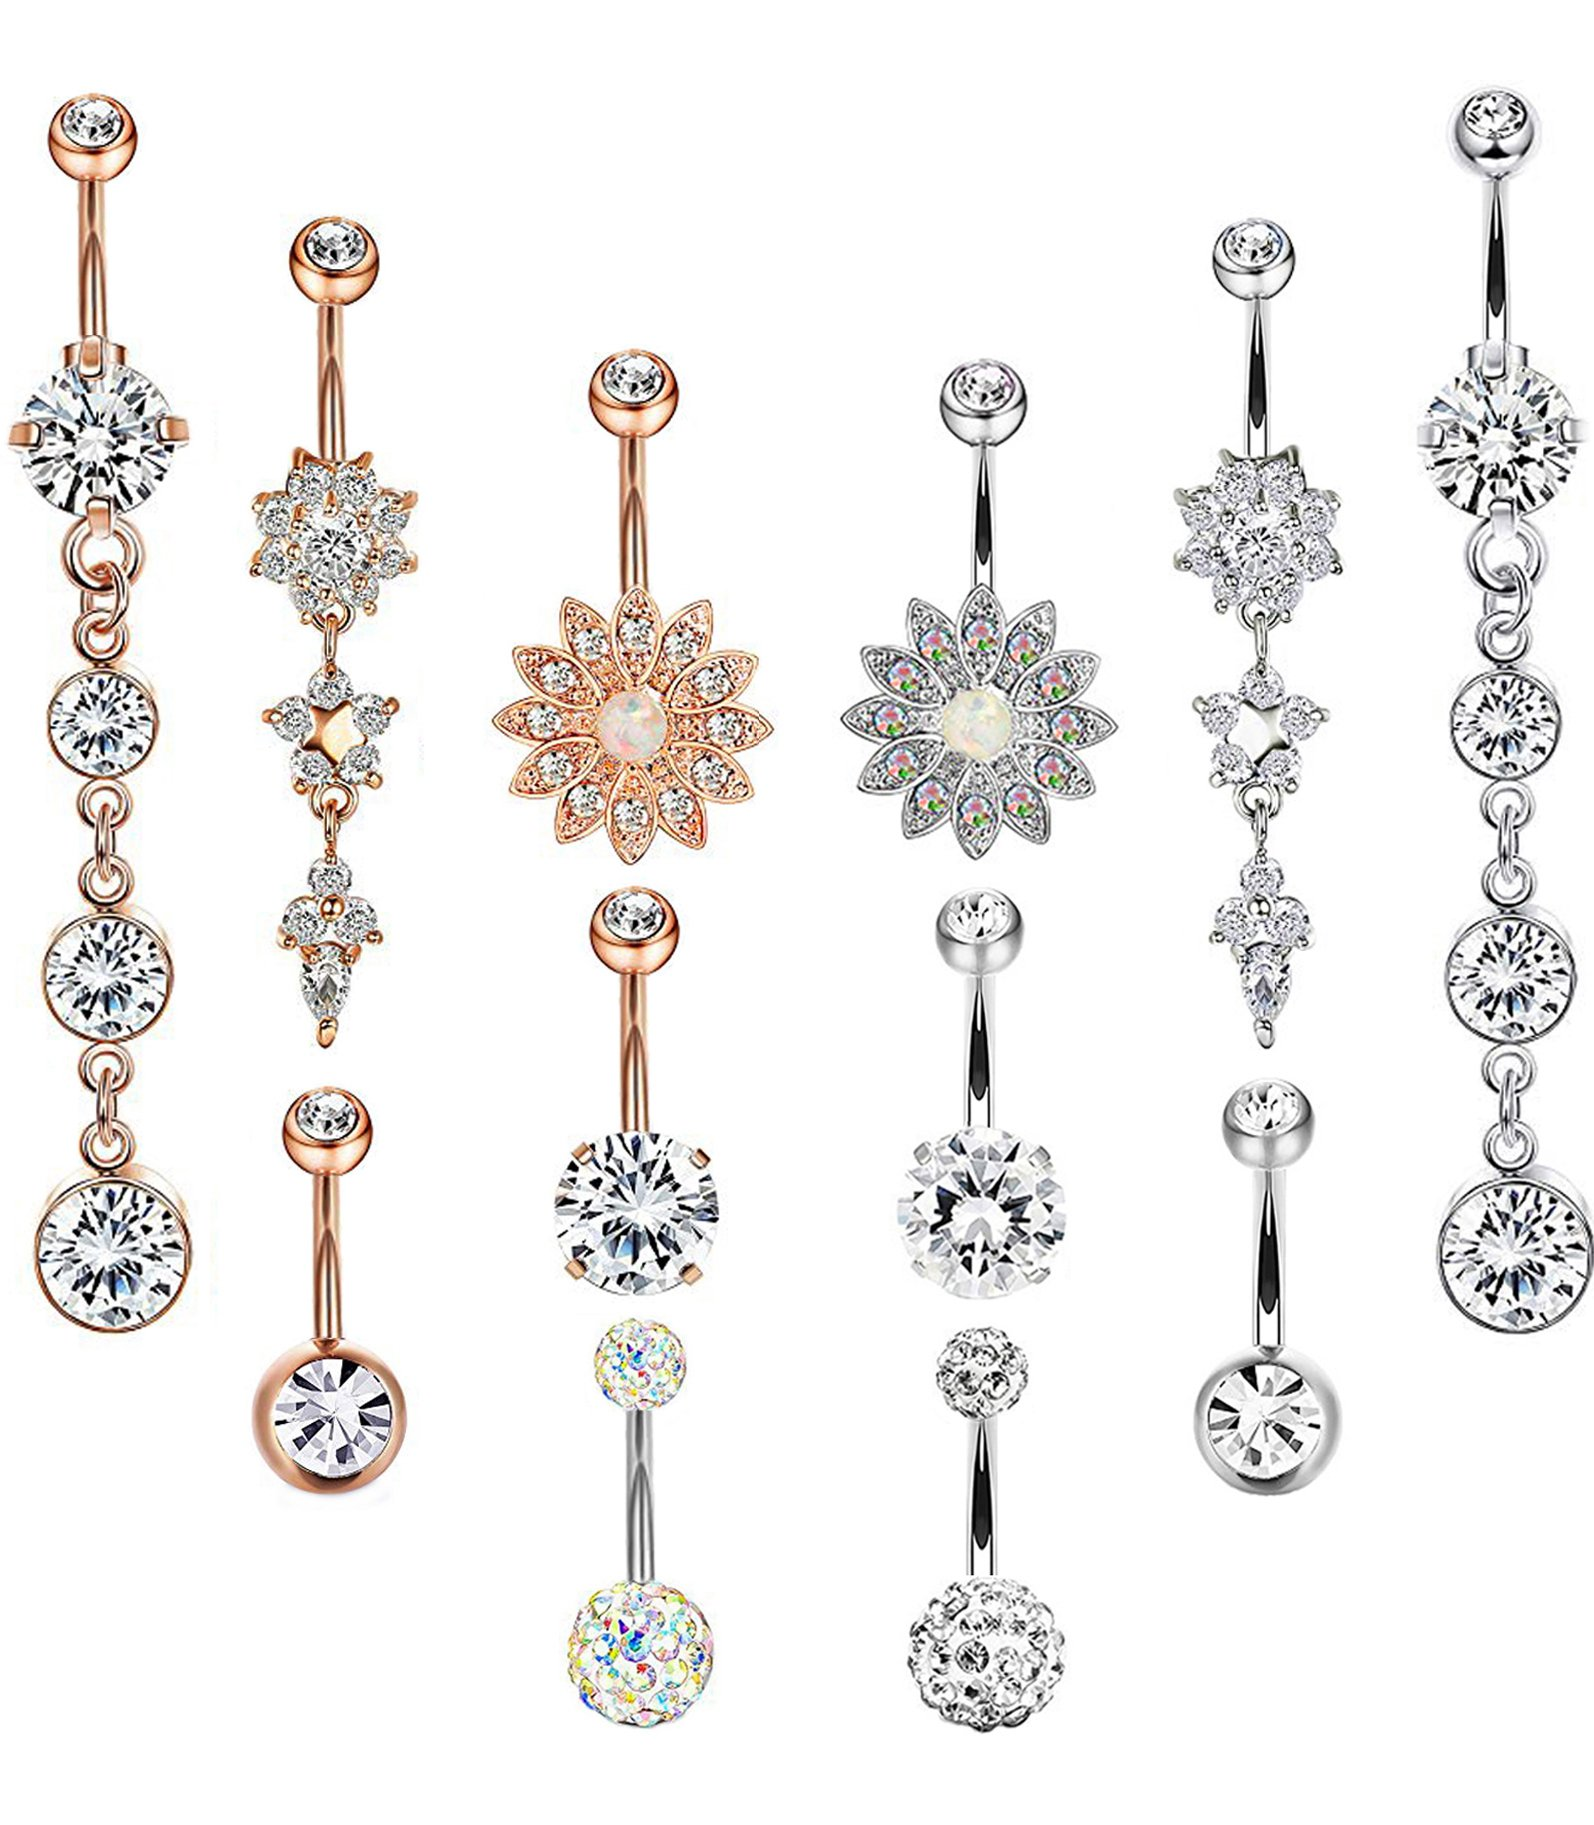 Masedy 12Pcs 14G 316L Stainless Steel Dangle Belly Button Rings for Women Girl Clear CZ Flower Barbell Body Piercing Jewelry SILVER+ROSE-GOLD